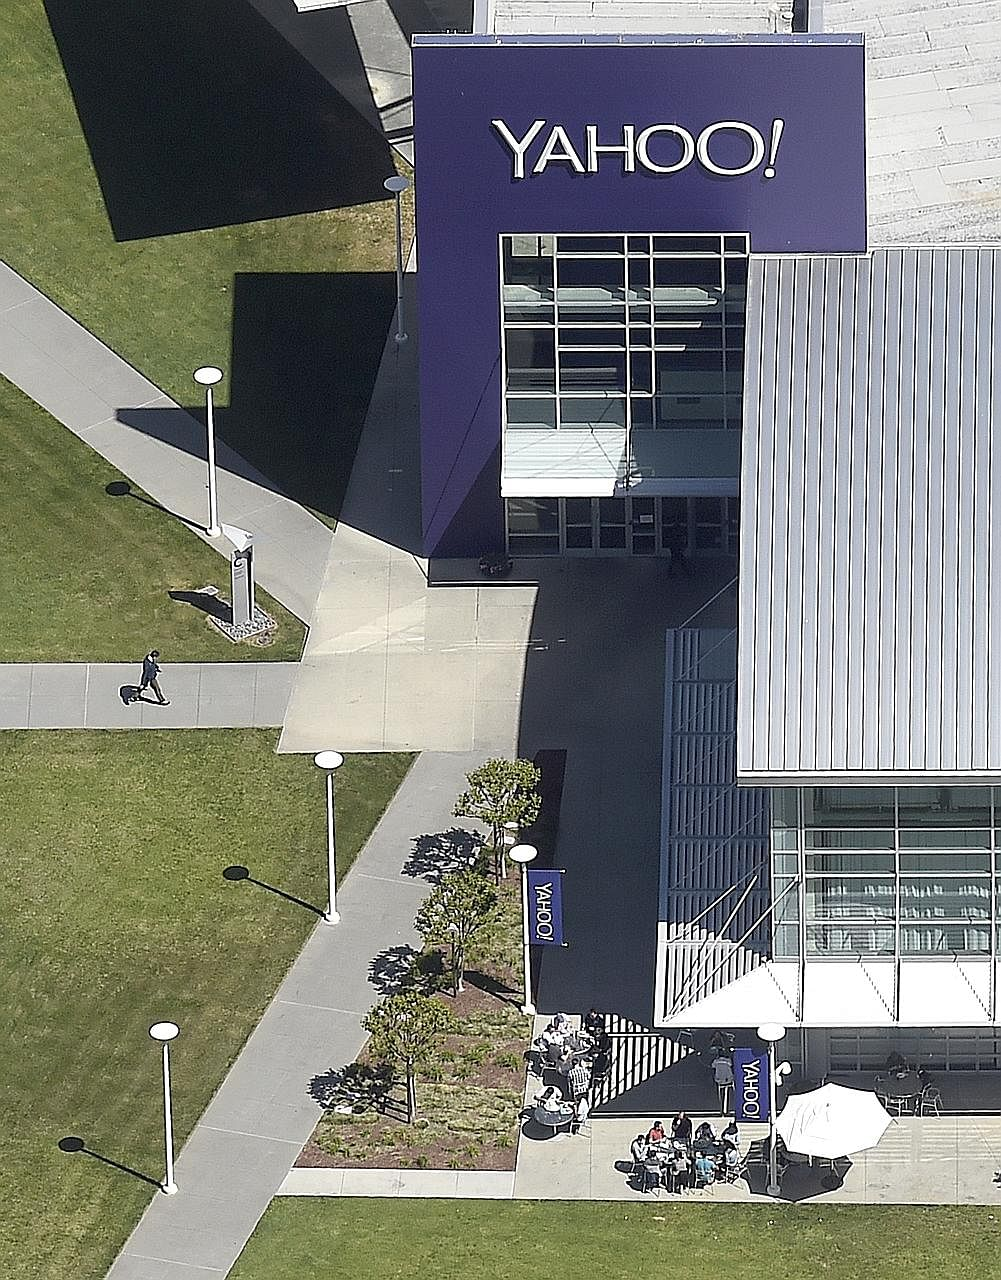 The Yahoo campus in Sunnyvale, California. Yahoo, which has been eclipsed by rivals such as Google and Facebook, is considering a sale as it pursues efforts to revive growth, focusing on mobile users.